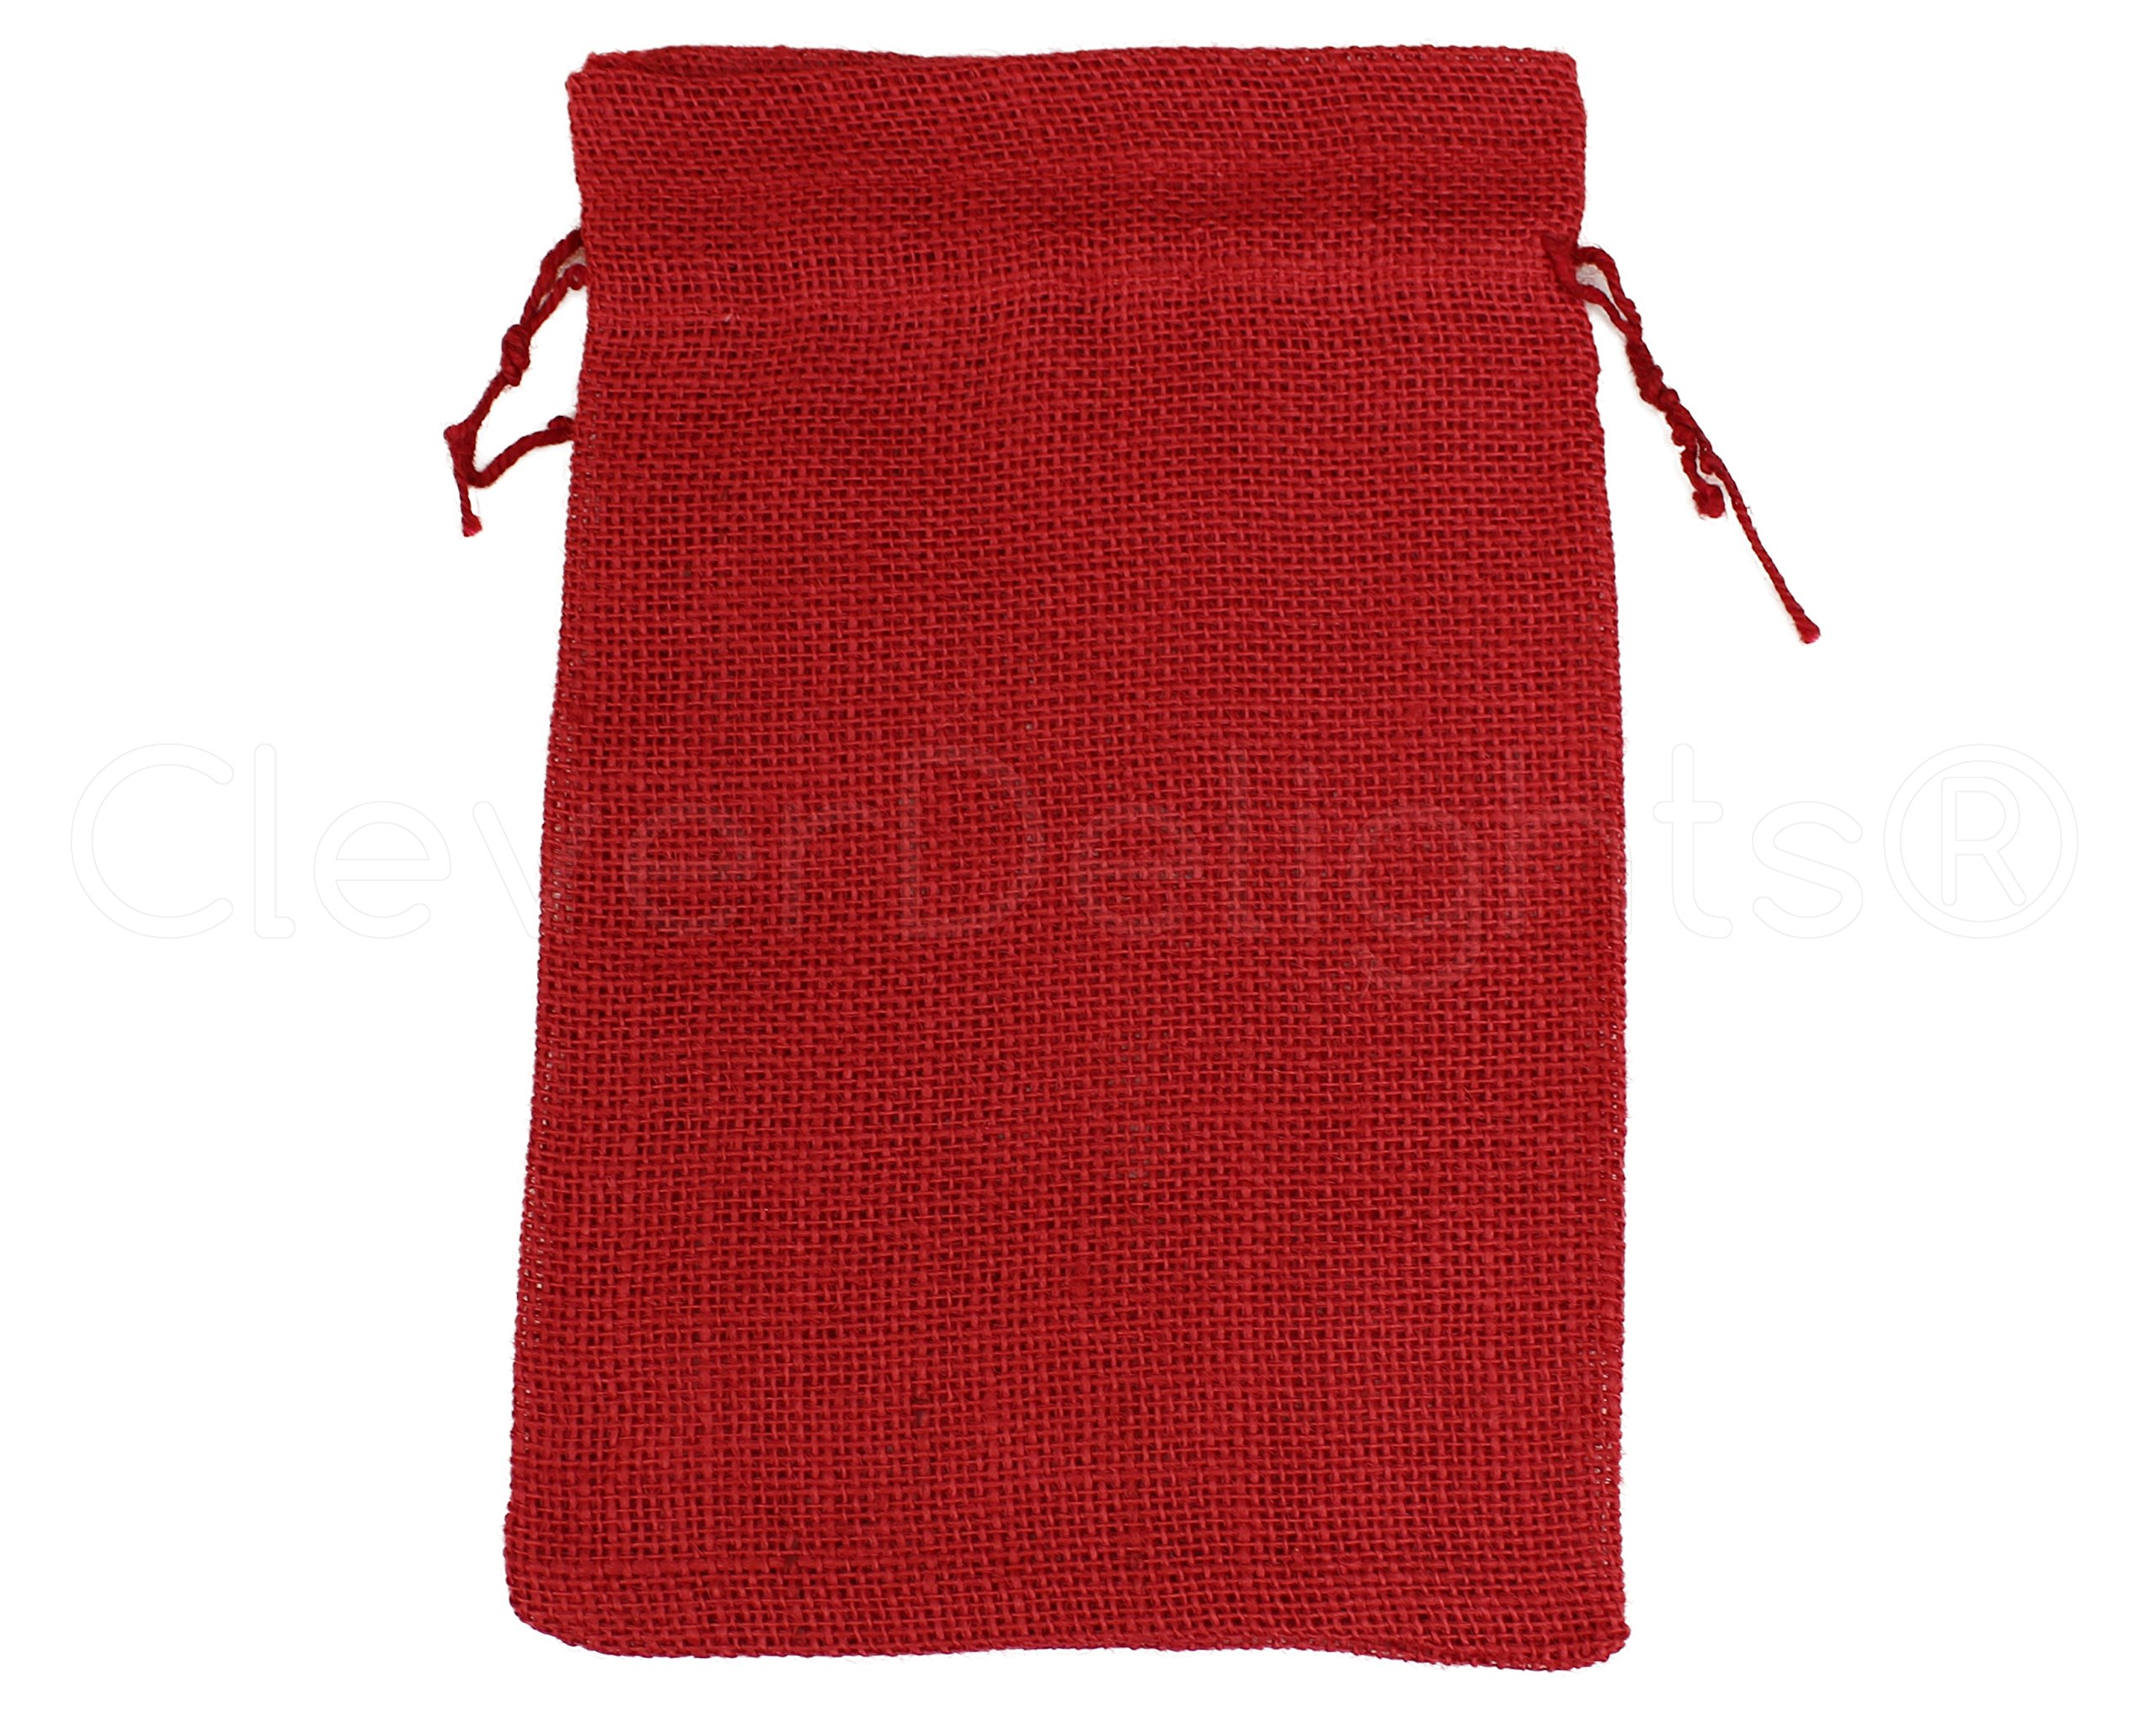 25 Pack - CleverDelights 8'' x 12'' Red Burlap Bags with Natural Jute Drawstring - Christmas Present Holiday Décor Rustic Party Favor Pouch Bags by CleverDelights (Image #1)